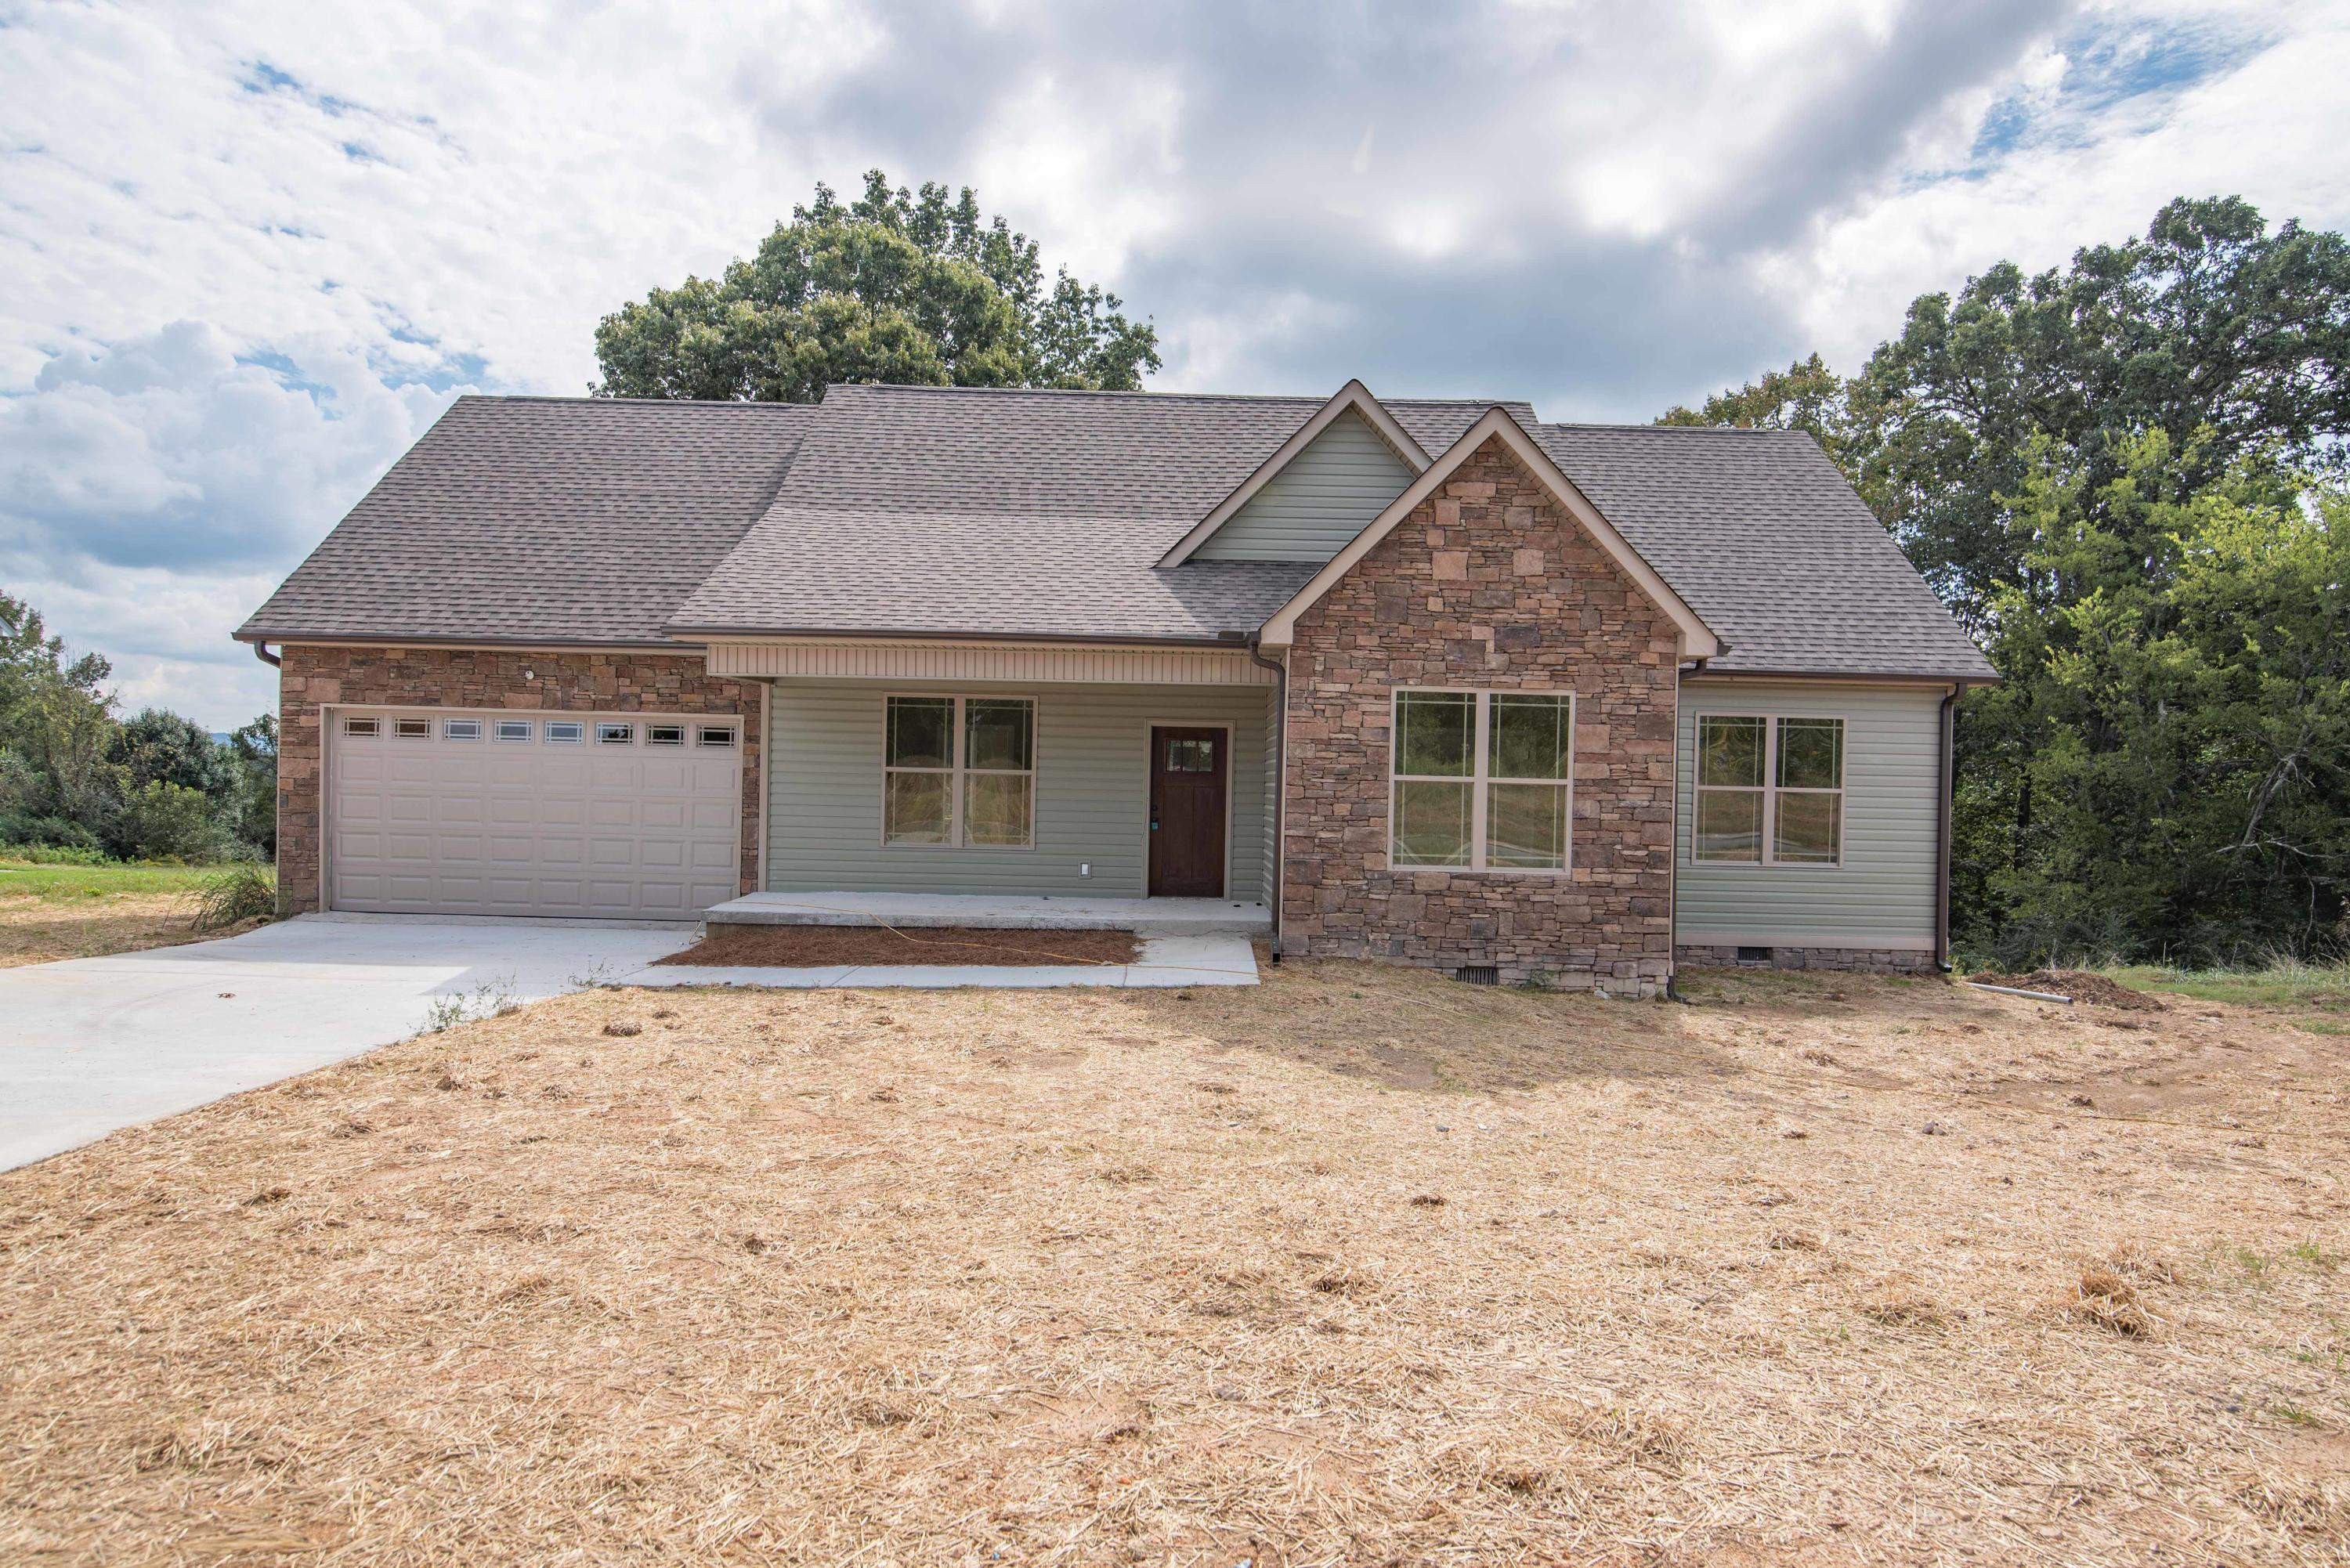 0 Cheshire Crossing Dr, Rock Spring, GA 30739